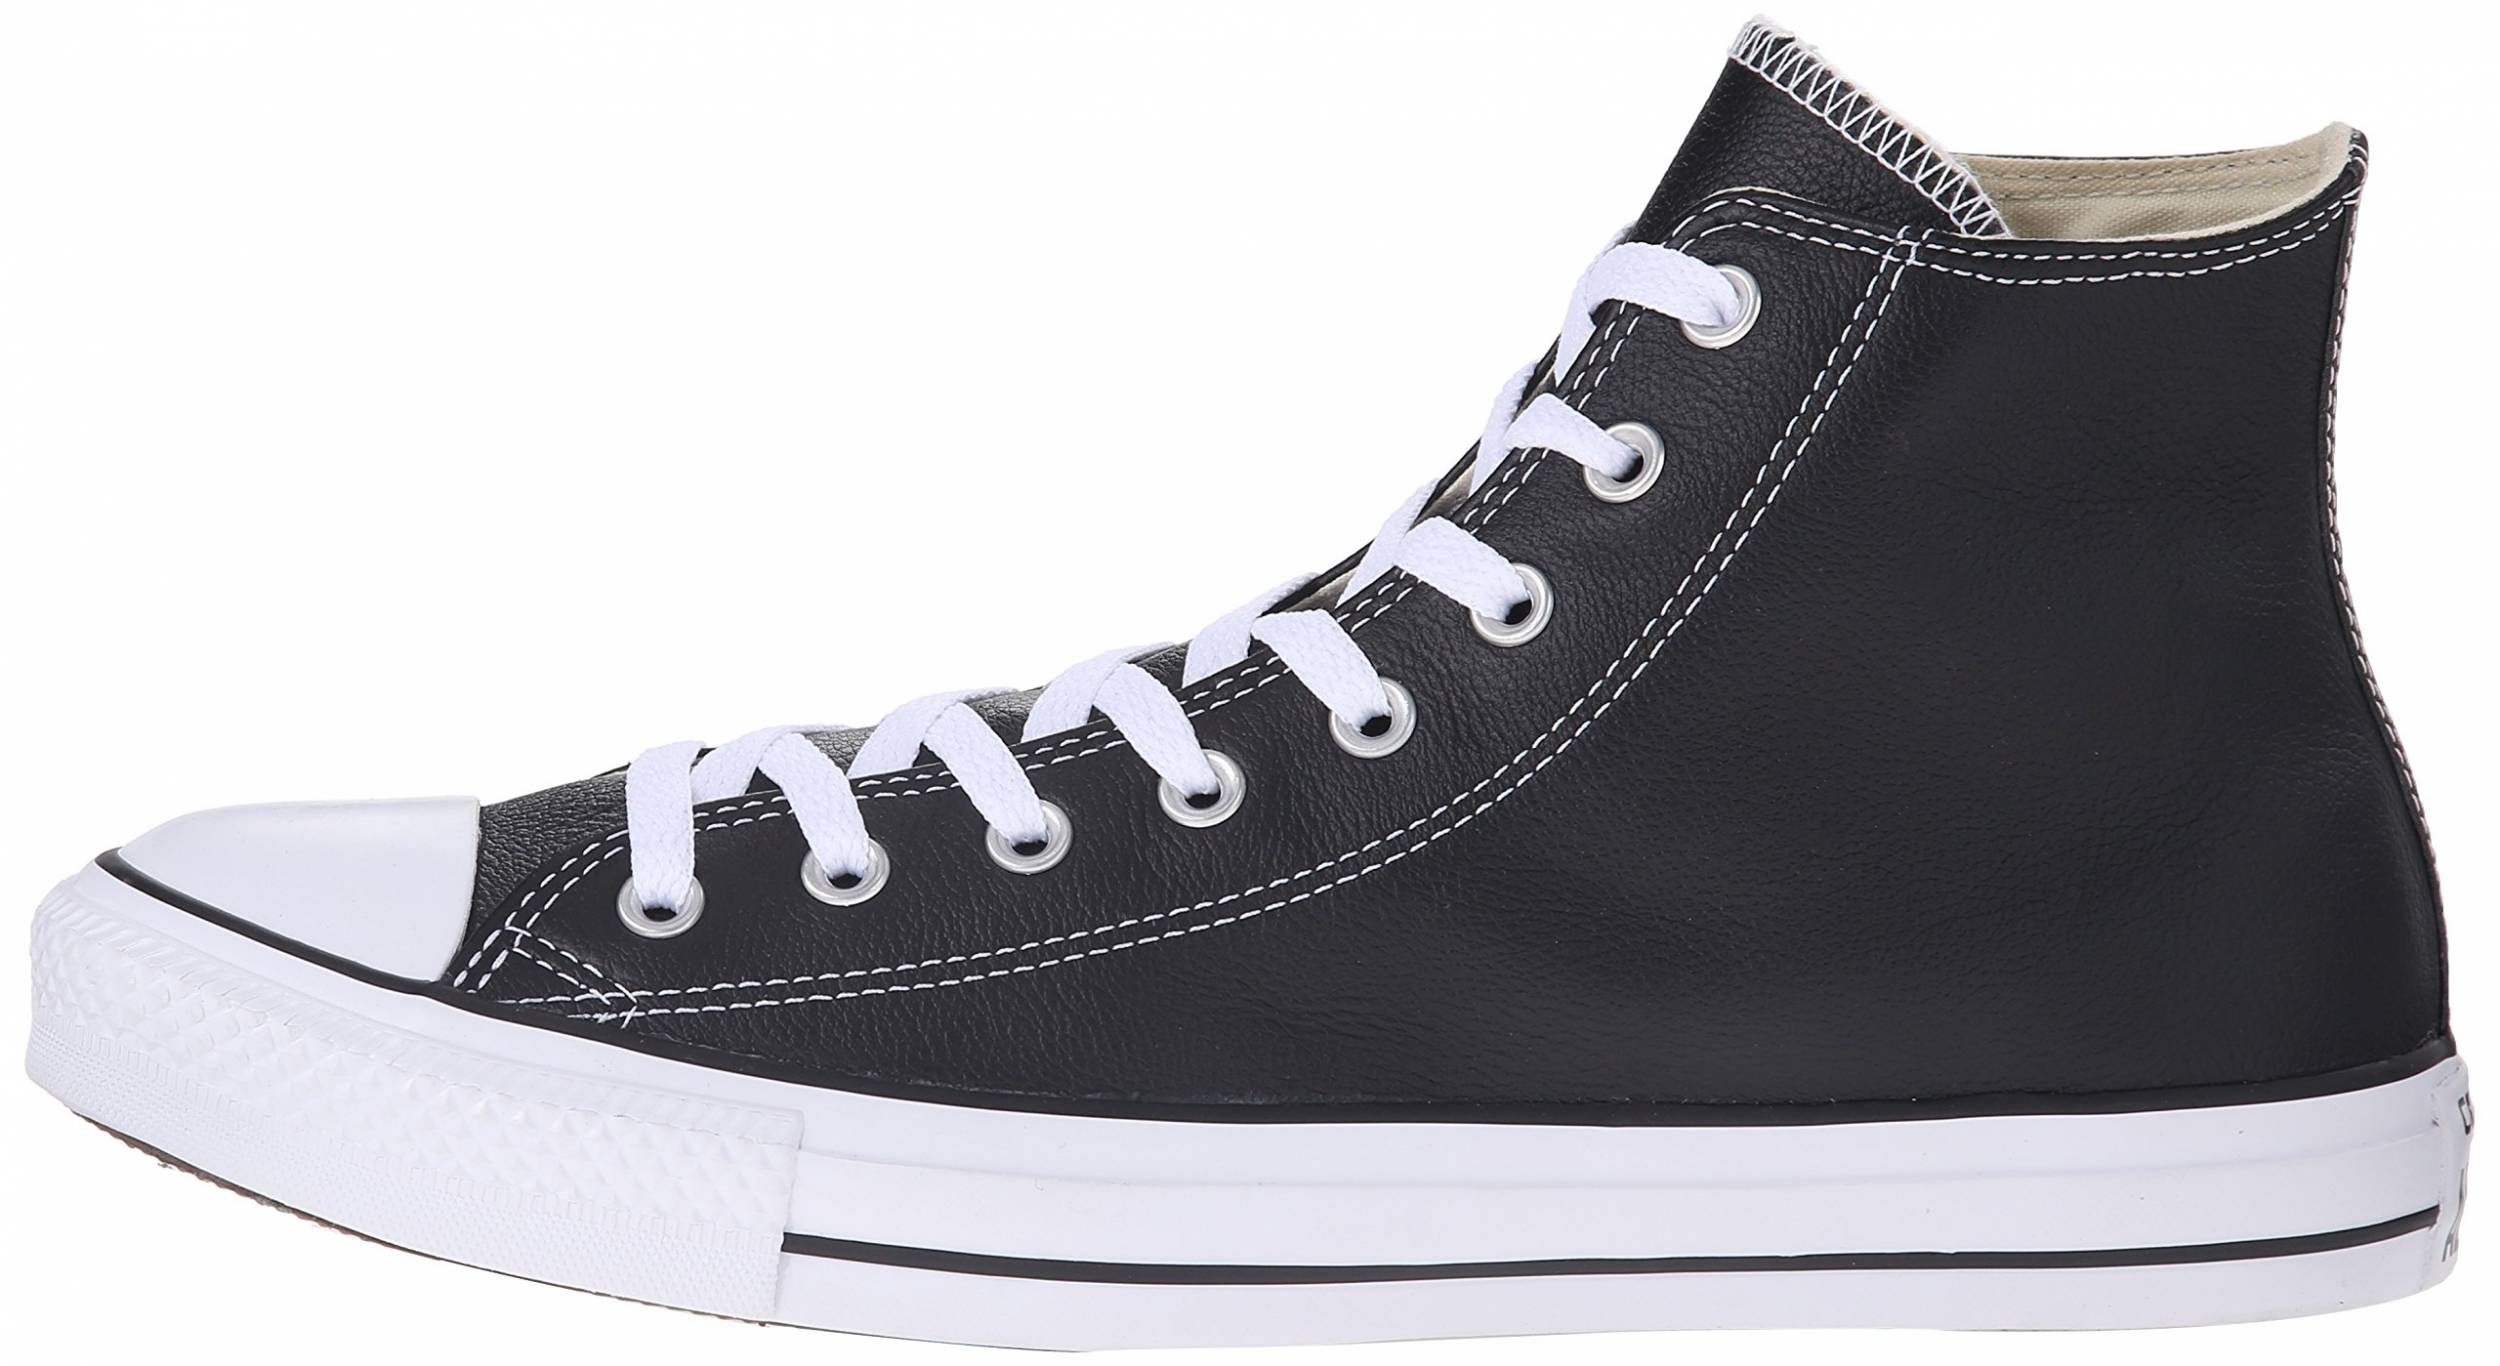 Moretón Sin Canoa  Converse Chuck Taylor All Star Leather High Top sneakers in 3 colors (only  $44) | RunRepeat